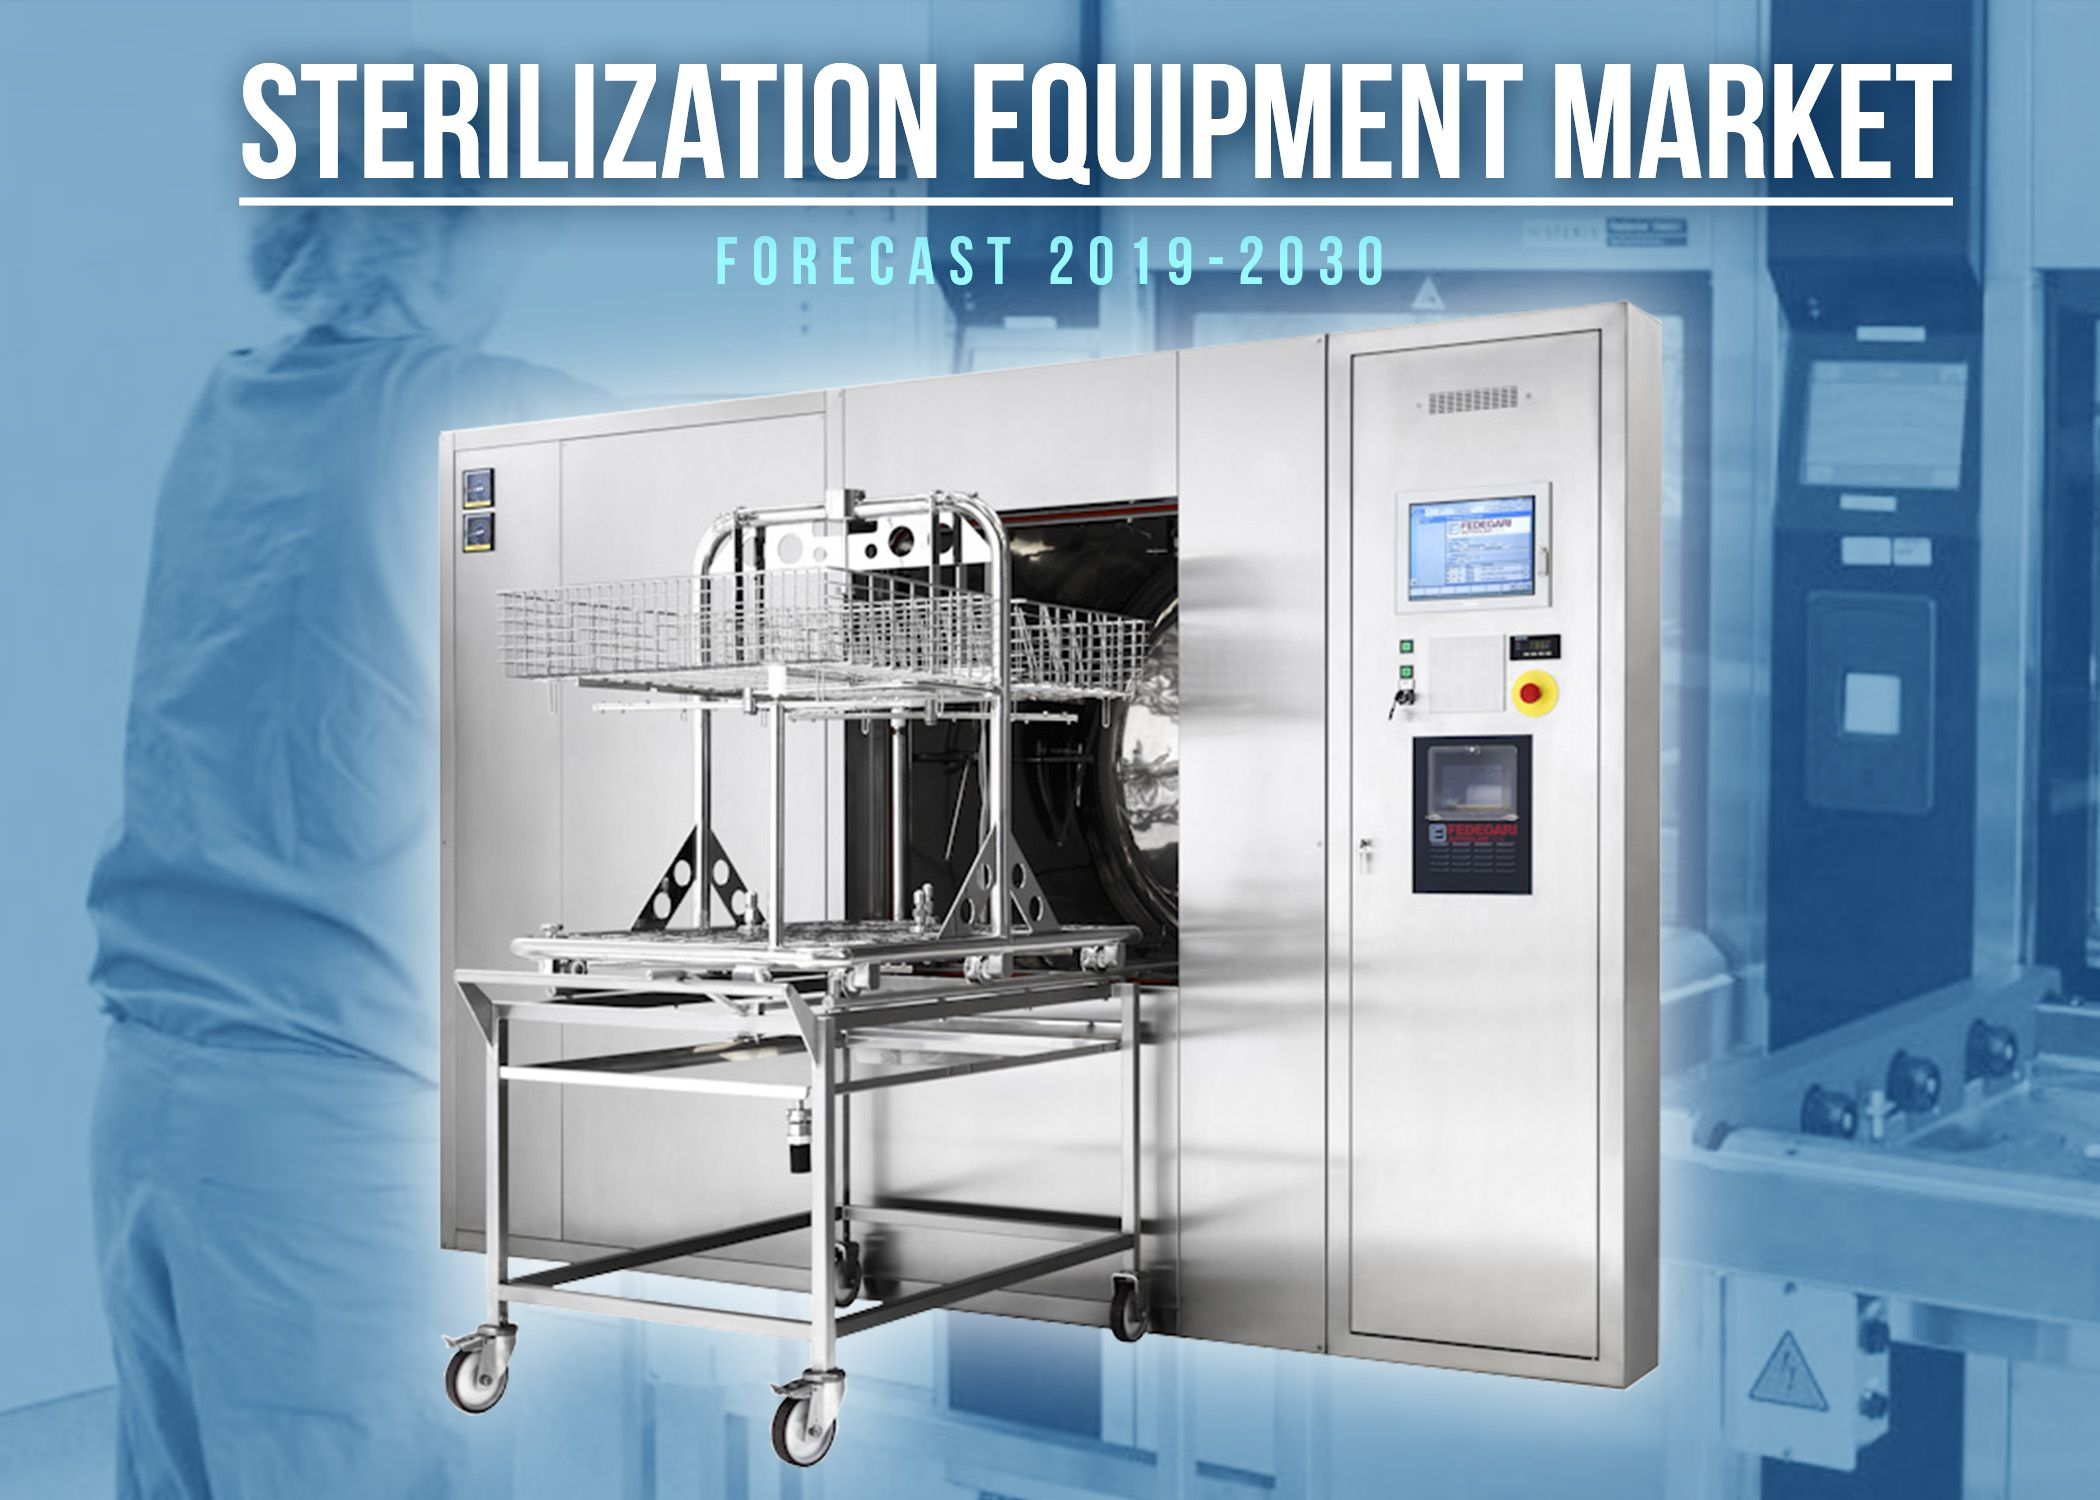 Sterilization Equipment Market By Product And Service Sterilization Consumables And Accessories Sterilization Instruments And Sterilization Services End Users Medical Device Companies Pharmaceutical Companies Hospitals Clinics And Food